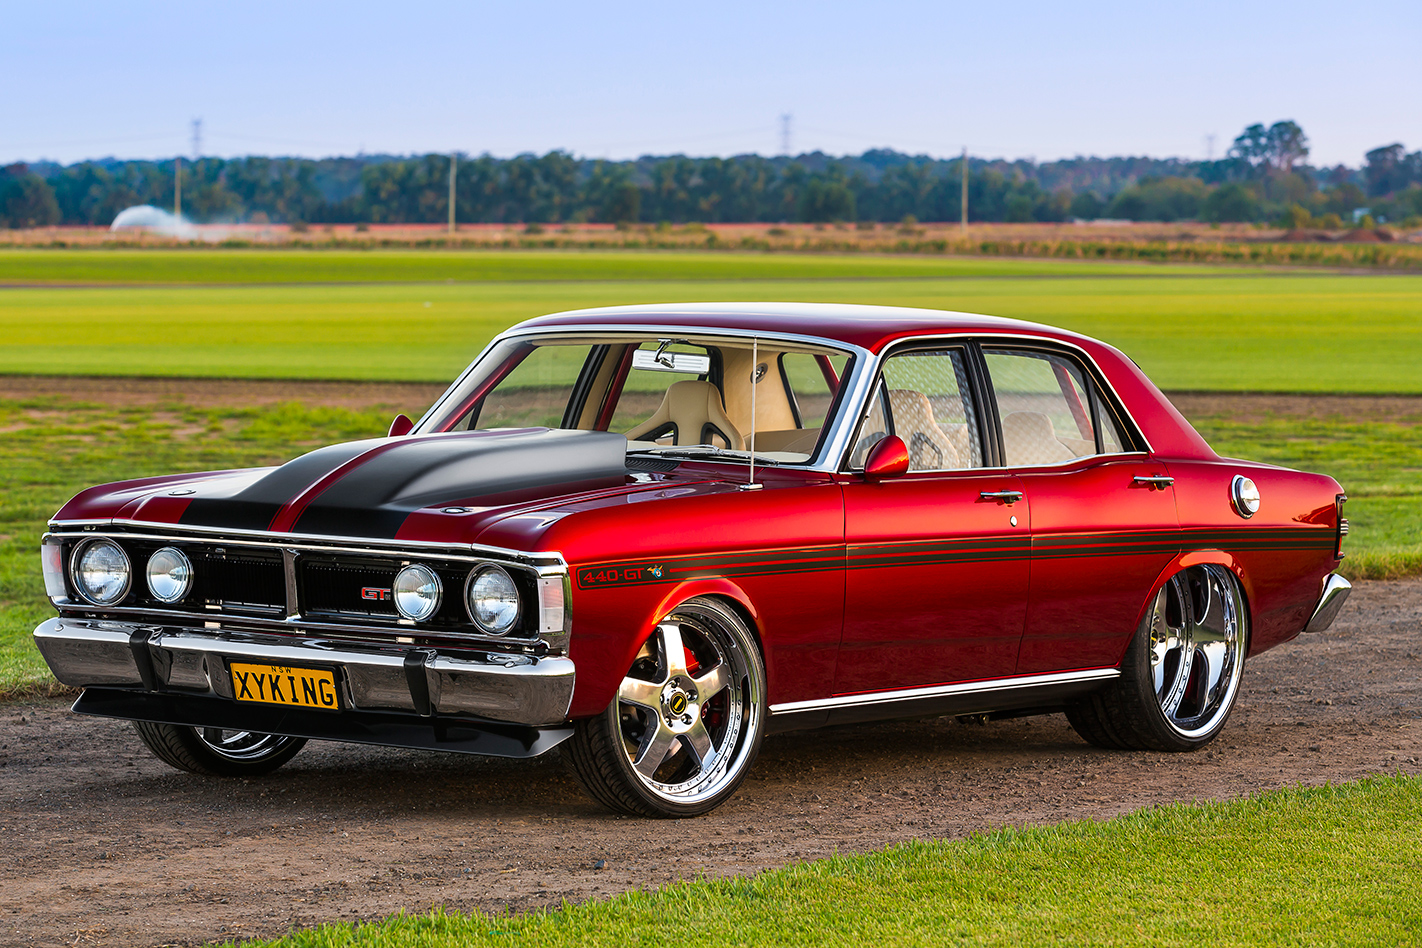 Ford Falcon XY XYKING